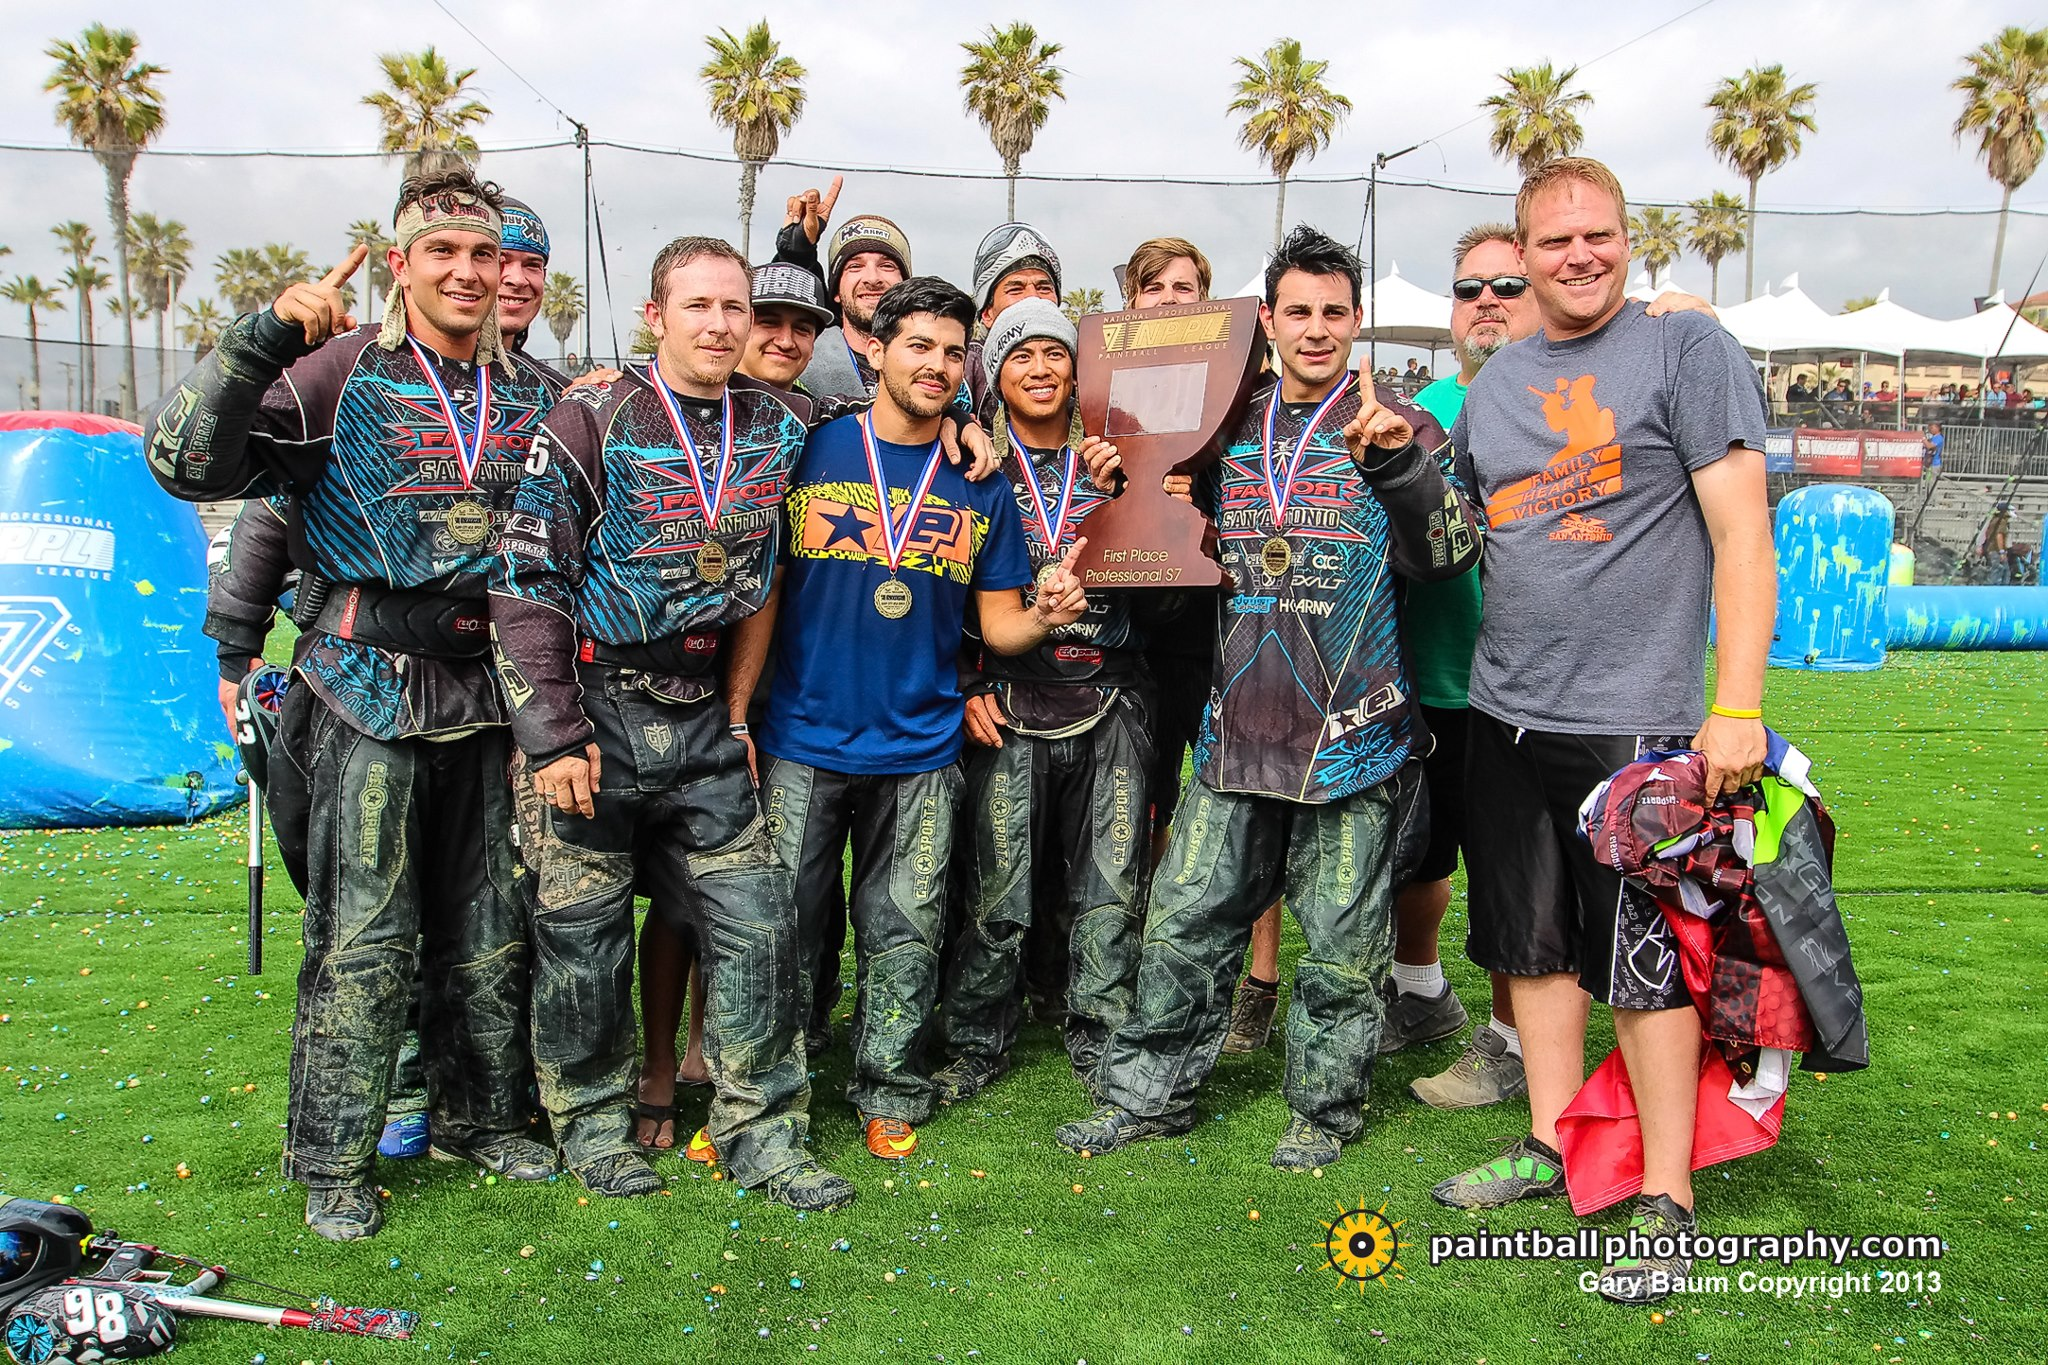 San Antonio X-Factor Takes 1st Place in the NPPL Surf City USA Open at Huntington Beach